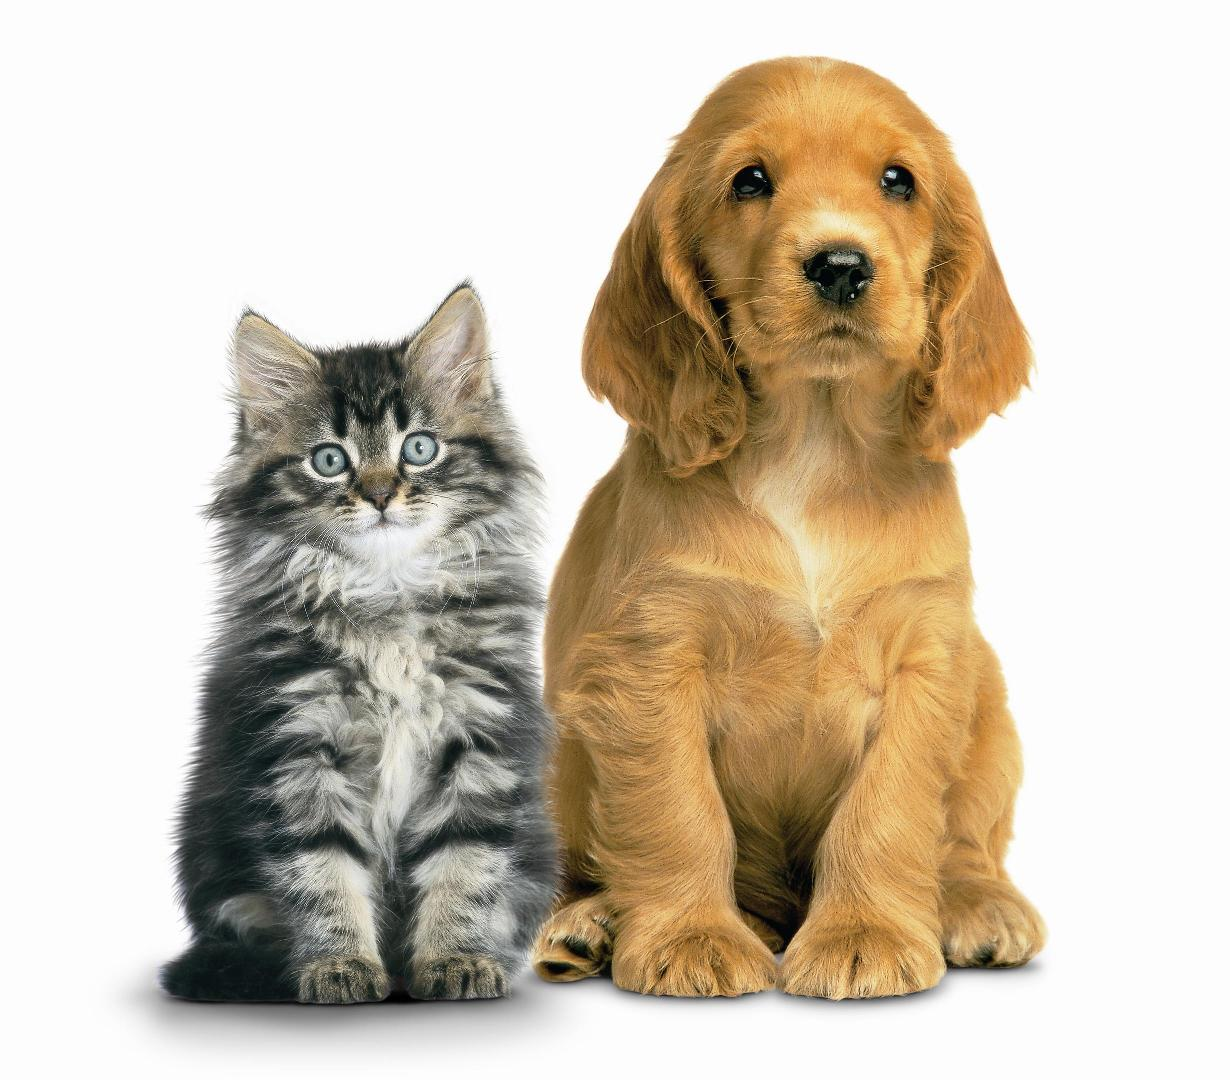 png hd dogs and cats transparent hd dogs and cats images. | pluspng